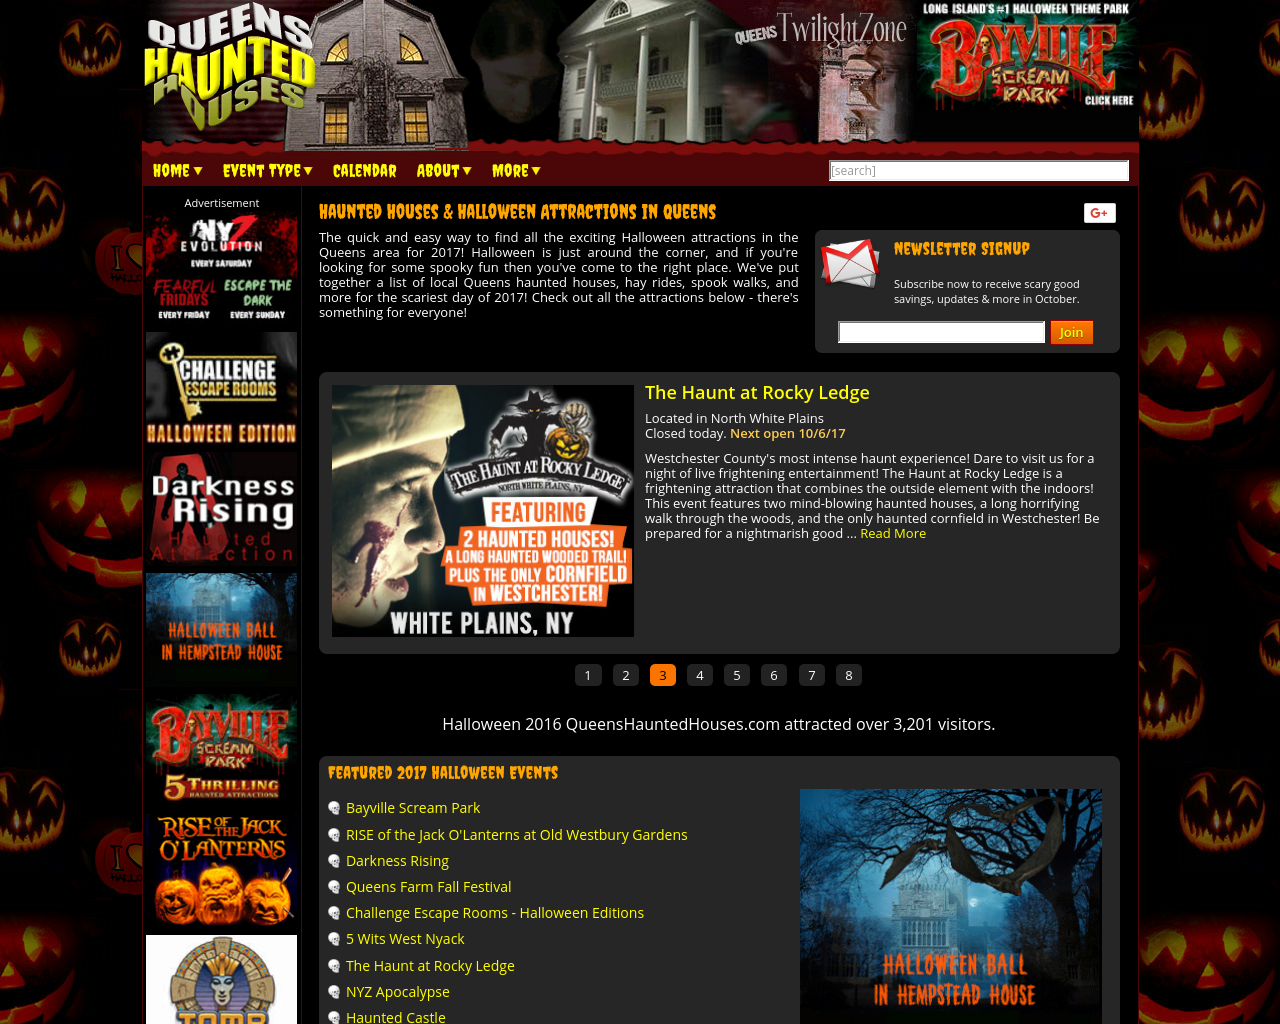 Queens-Haunted-Houses-Advertising-Reviews-Pricing